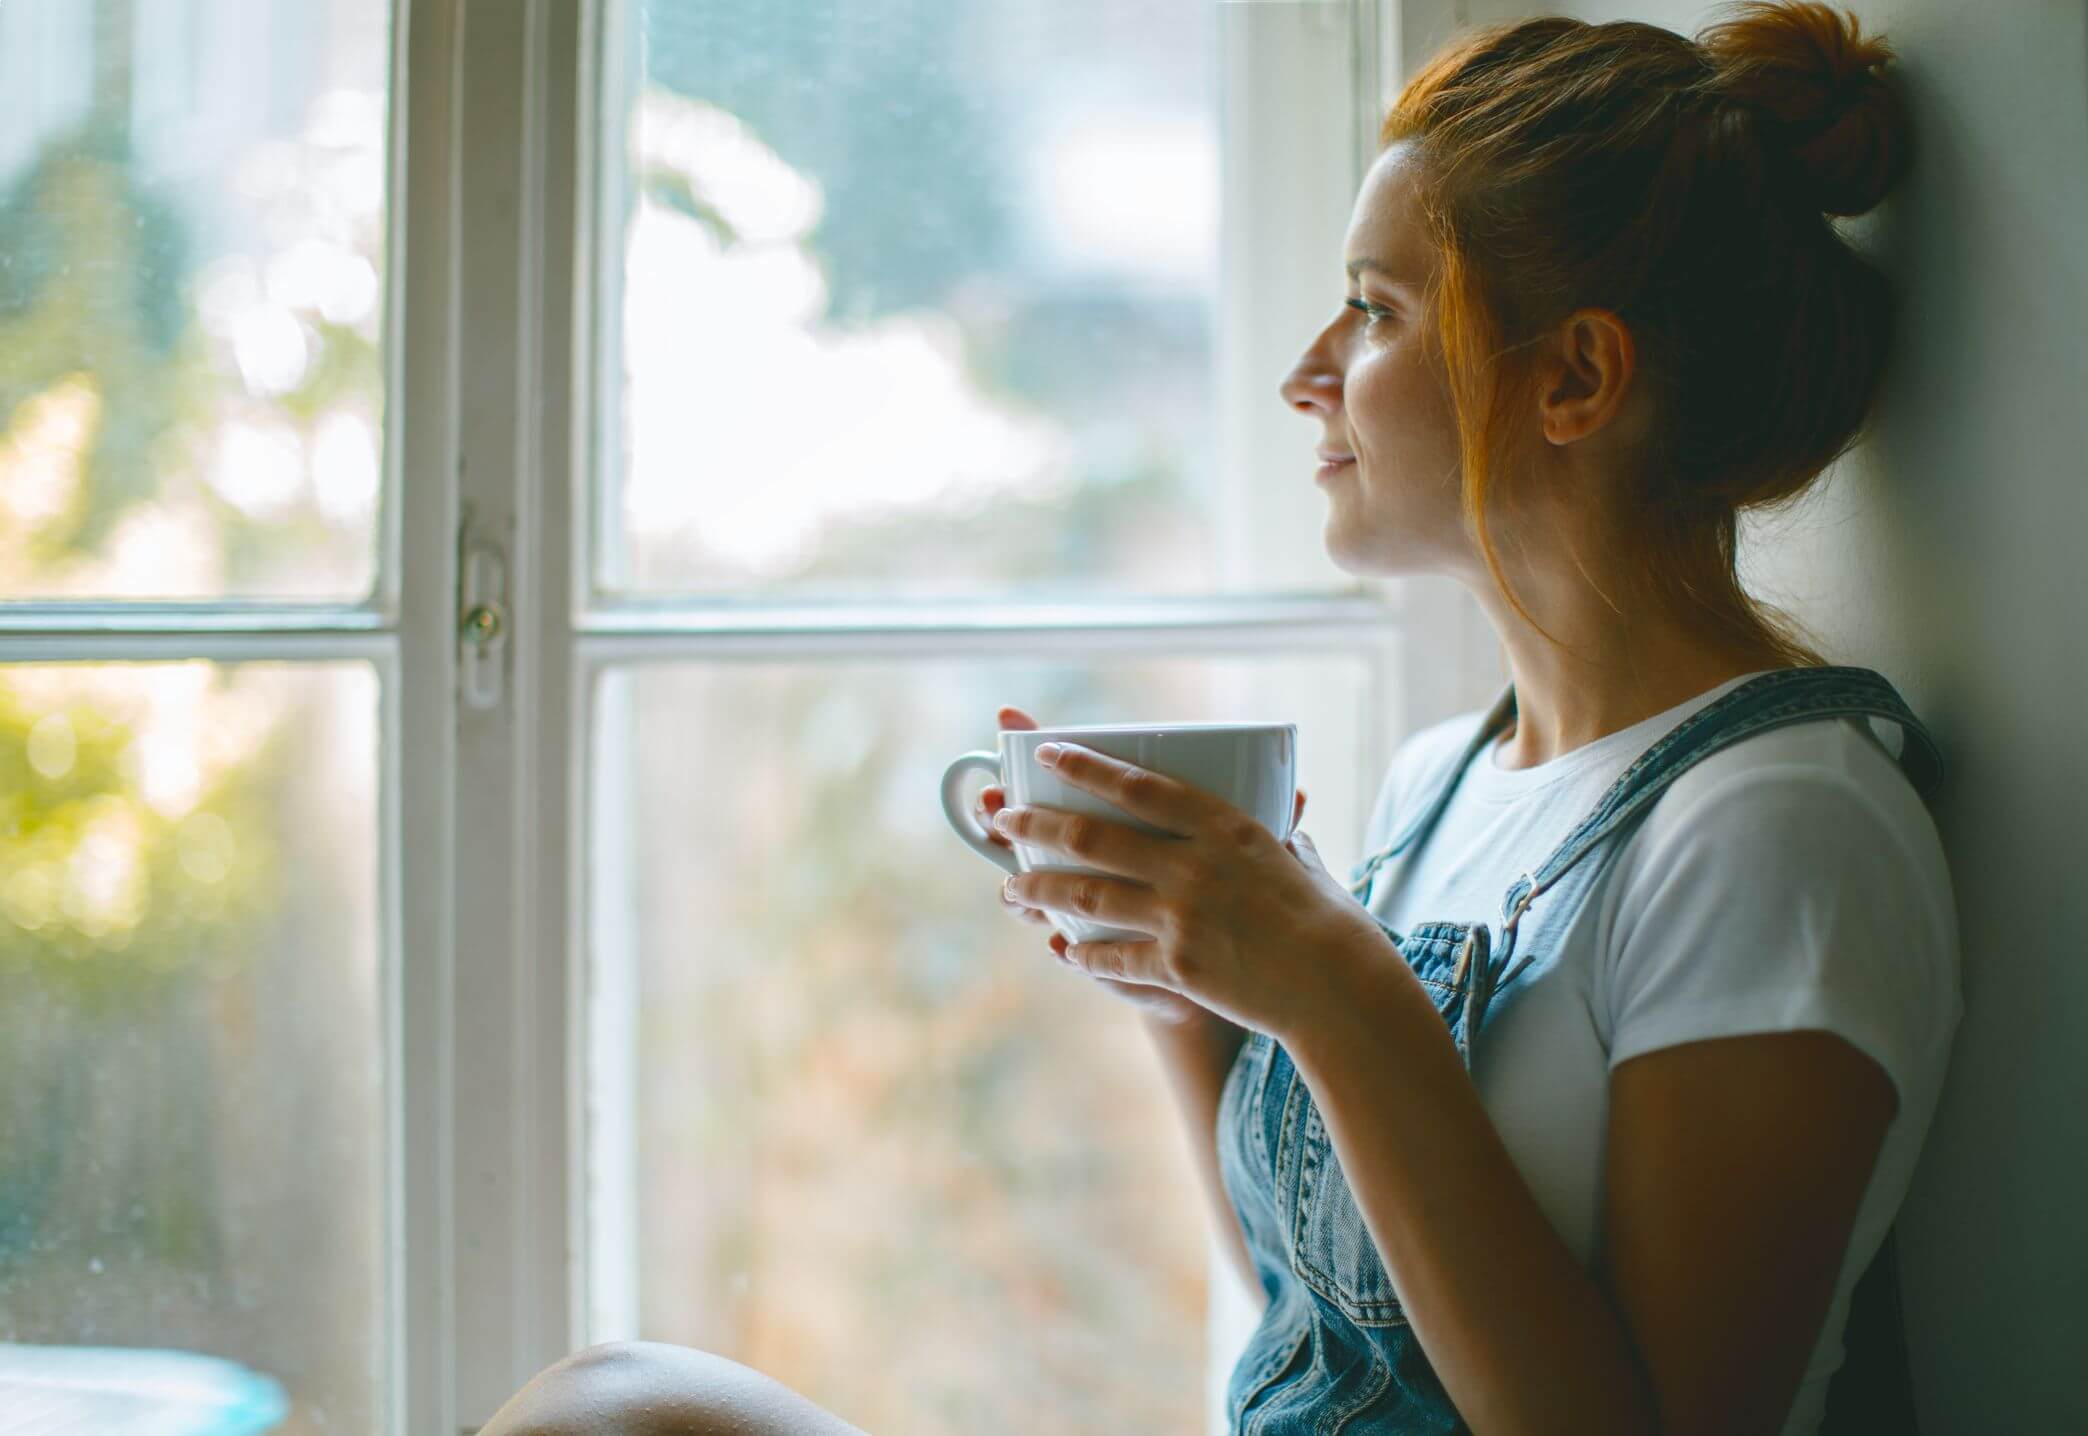 15 Reasons I Like Being Alone